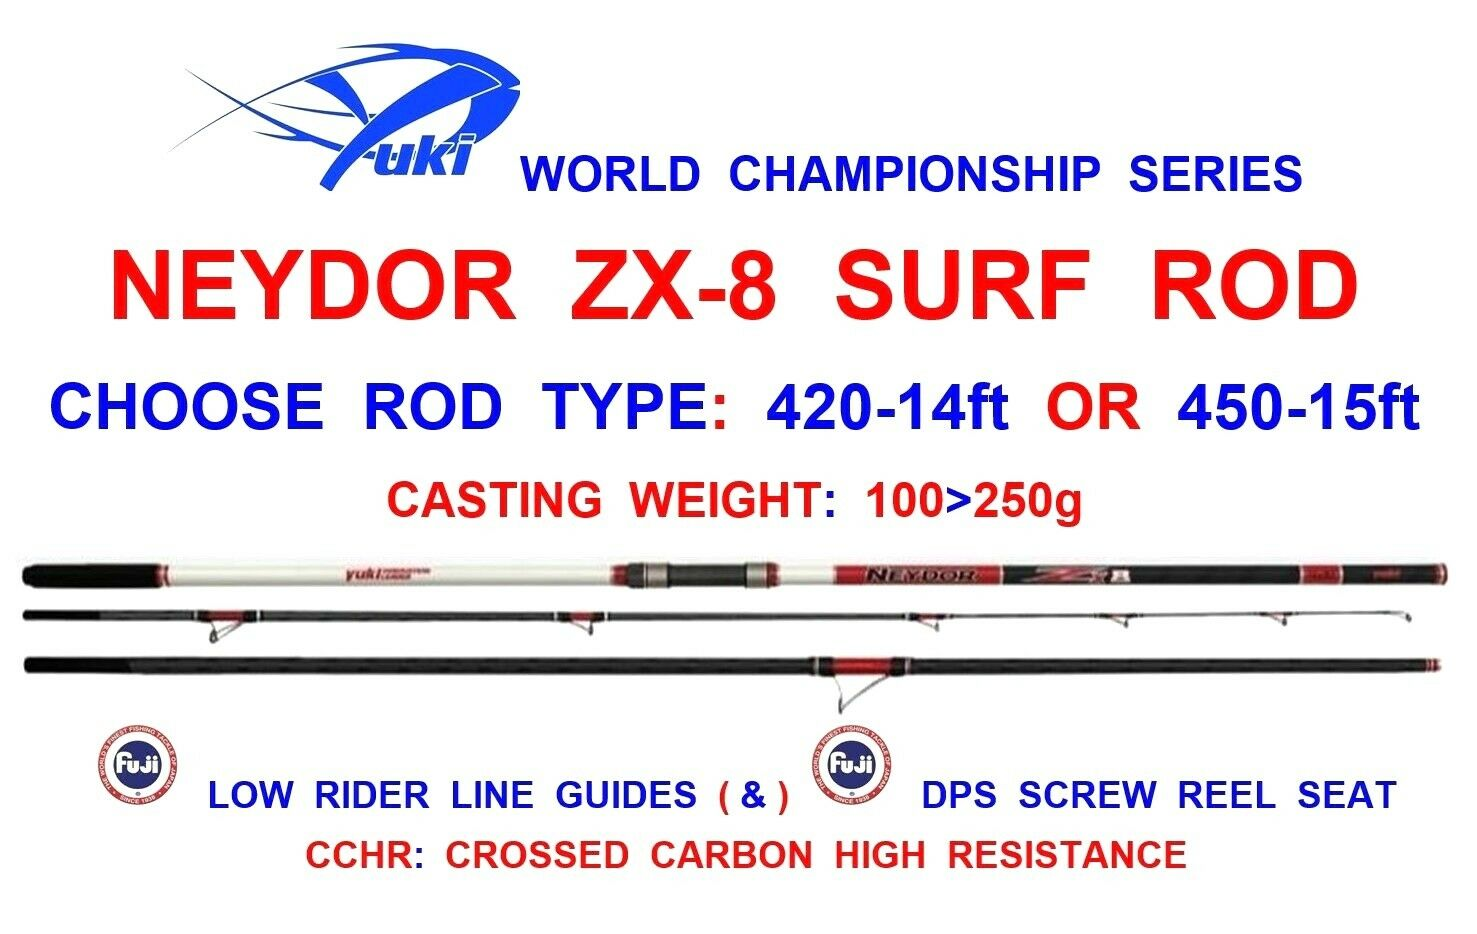 YUKI NEYDOR ZX-8 SURF ROD SEA FISHING 3pc BEACHCASTER FUJI LINE GUIDES+REEL SEAT